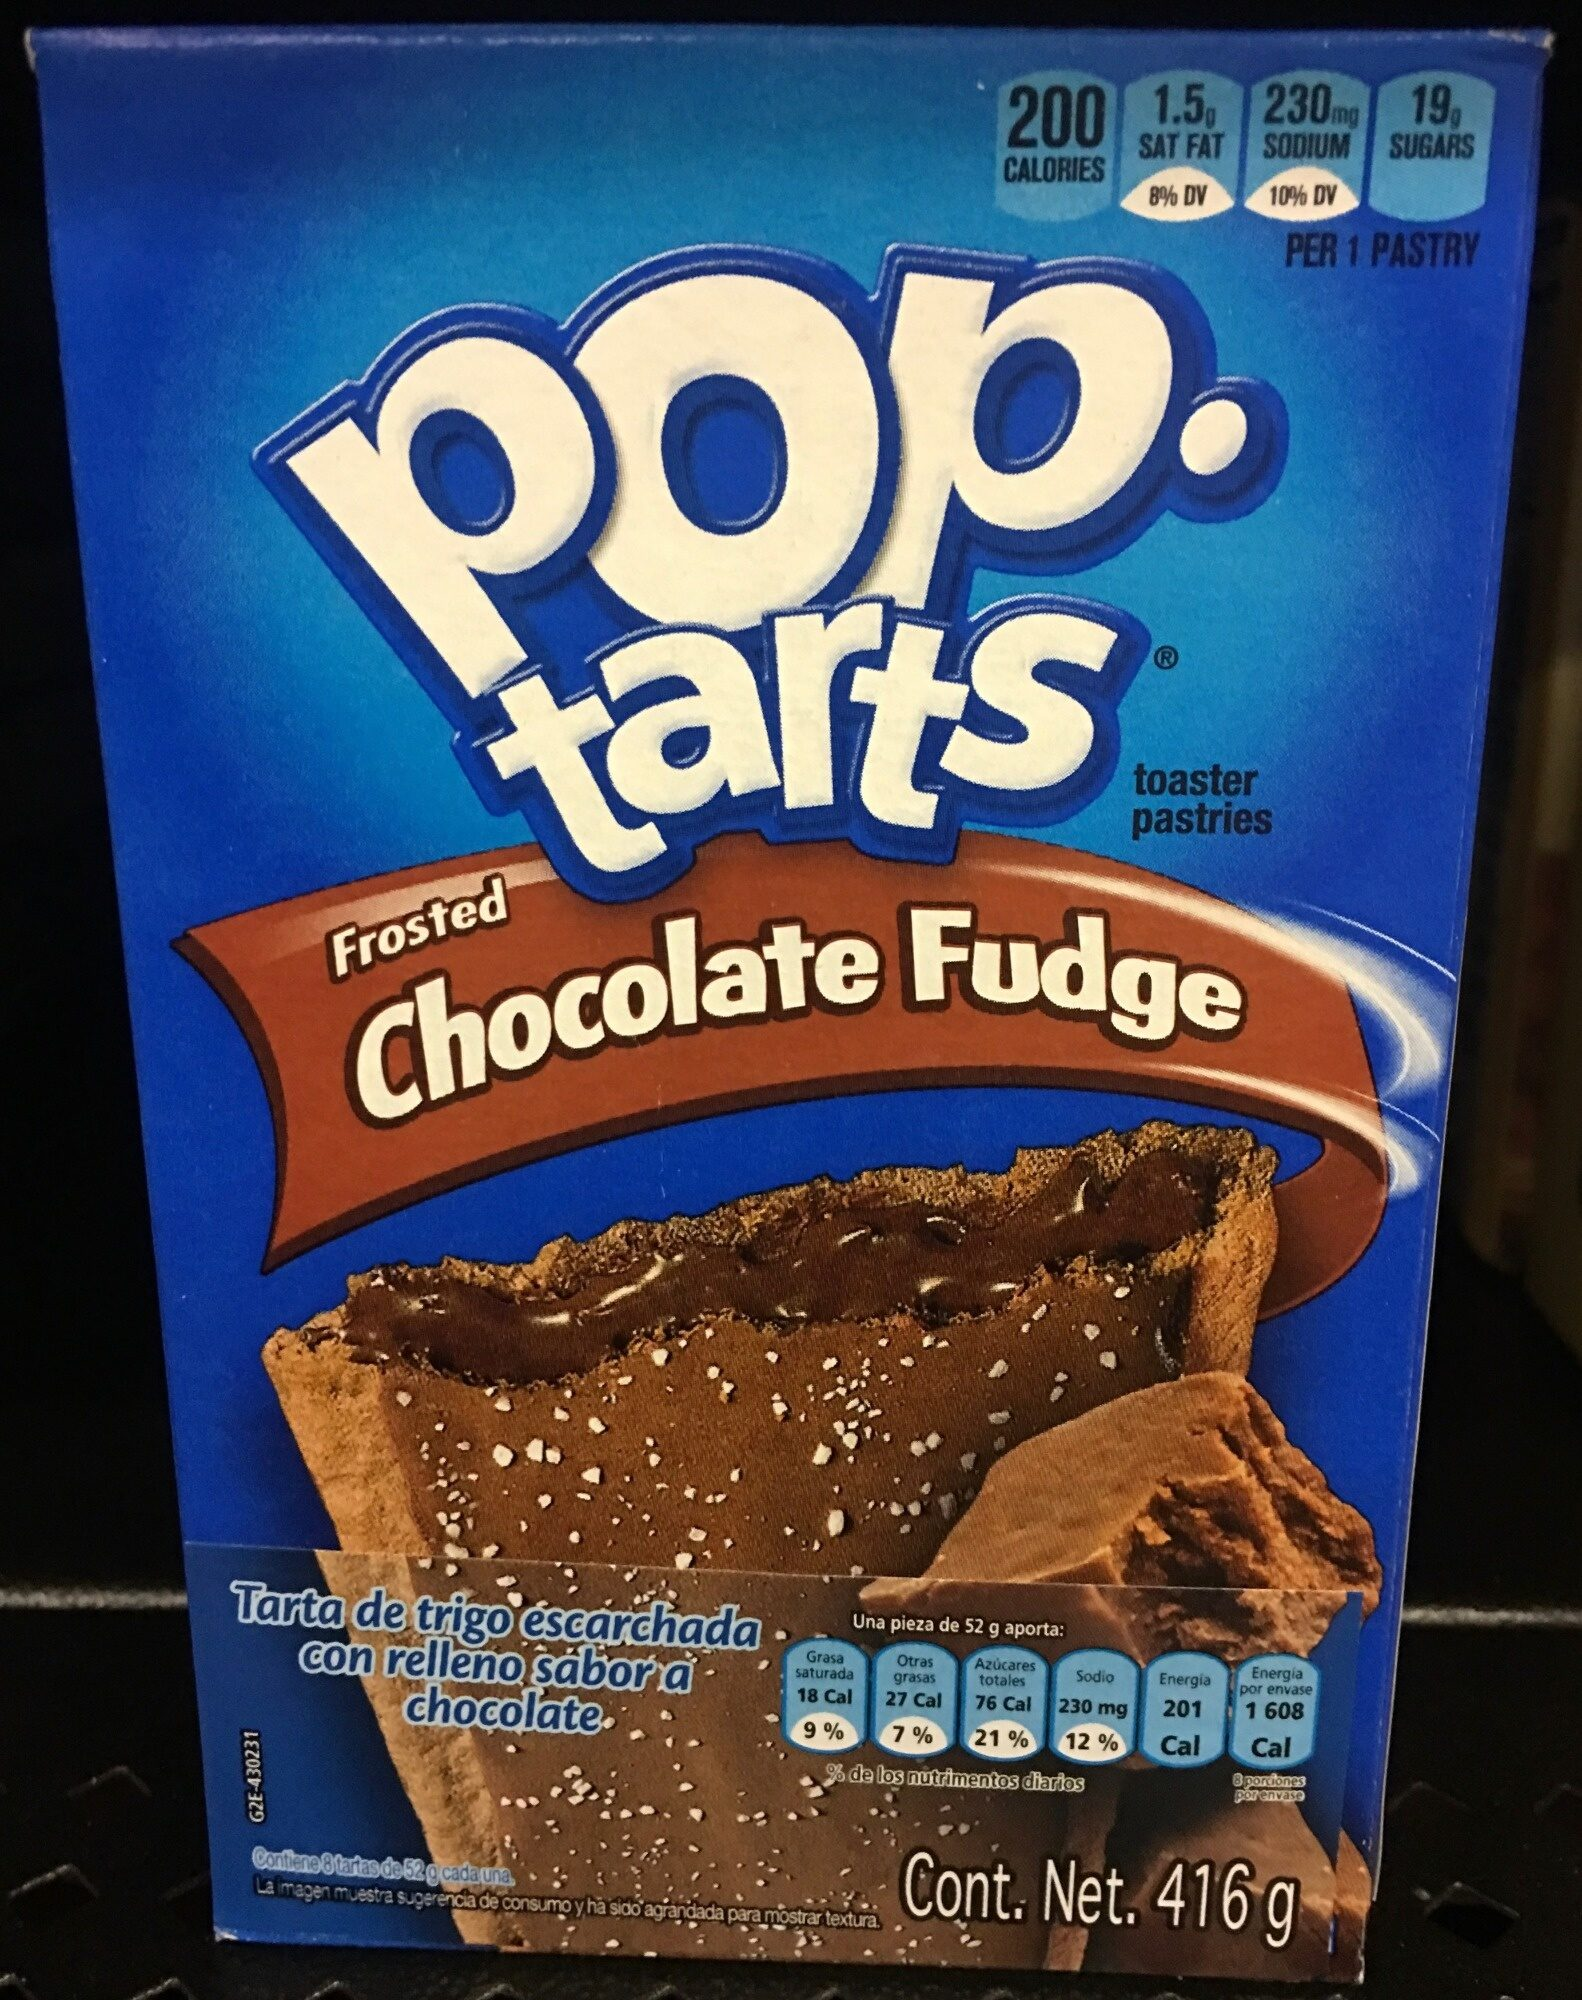 Toaster pastries, frosted chocolate fudge - Produit - en